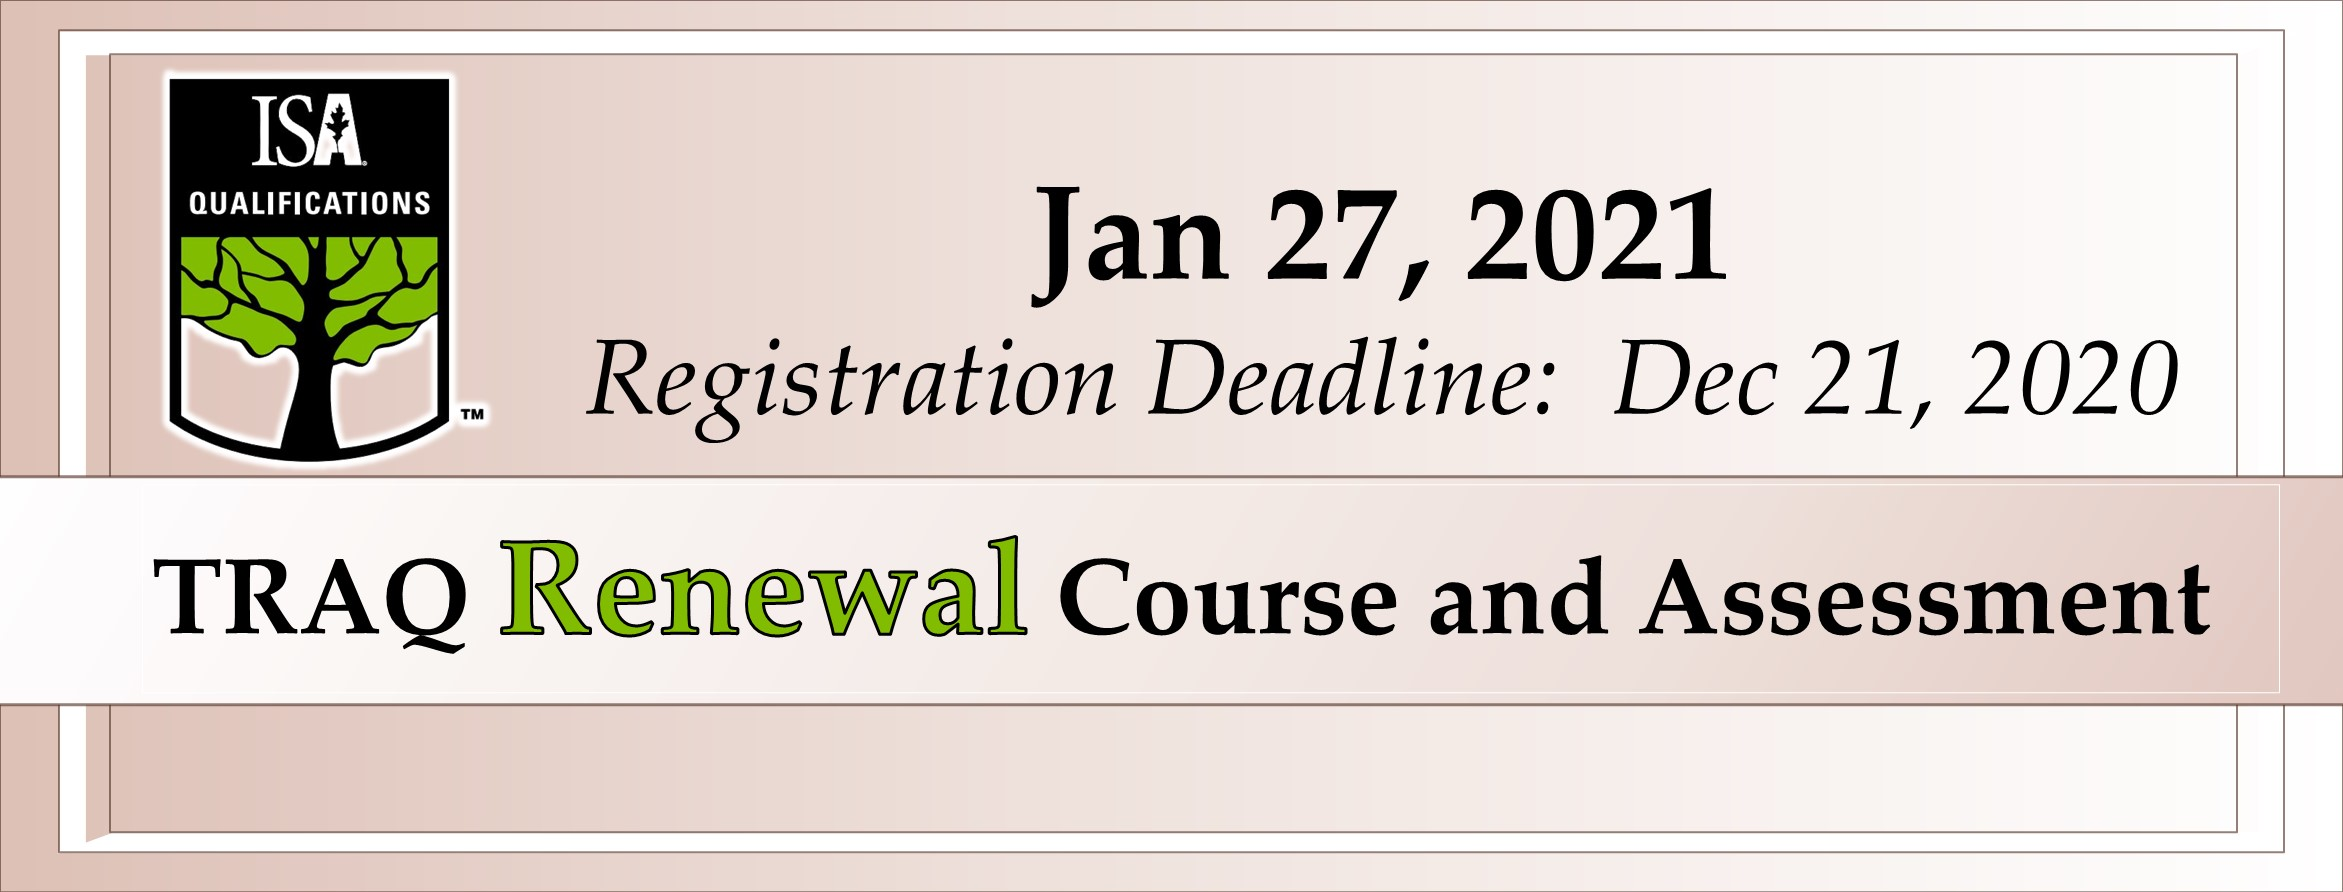 TRAQ Renewal Course & Assessment at Jan 27, 2021